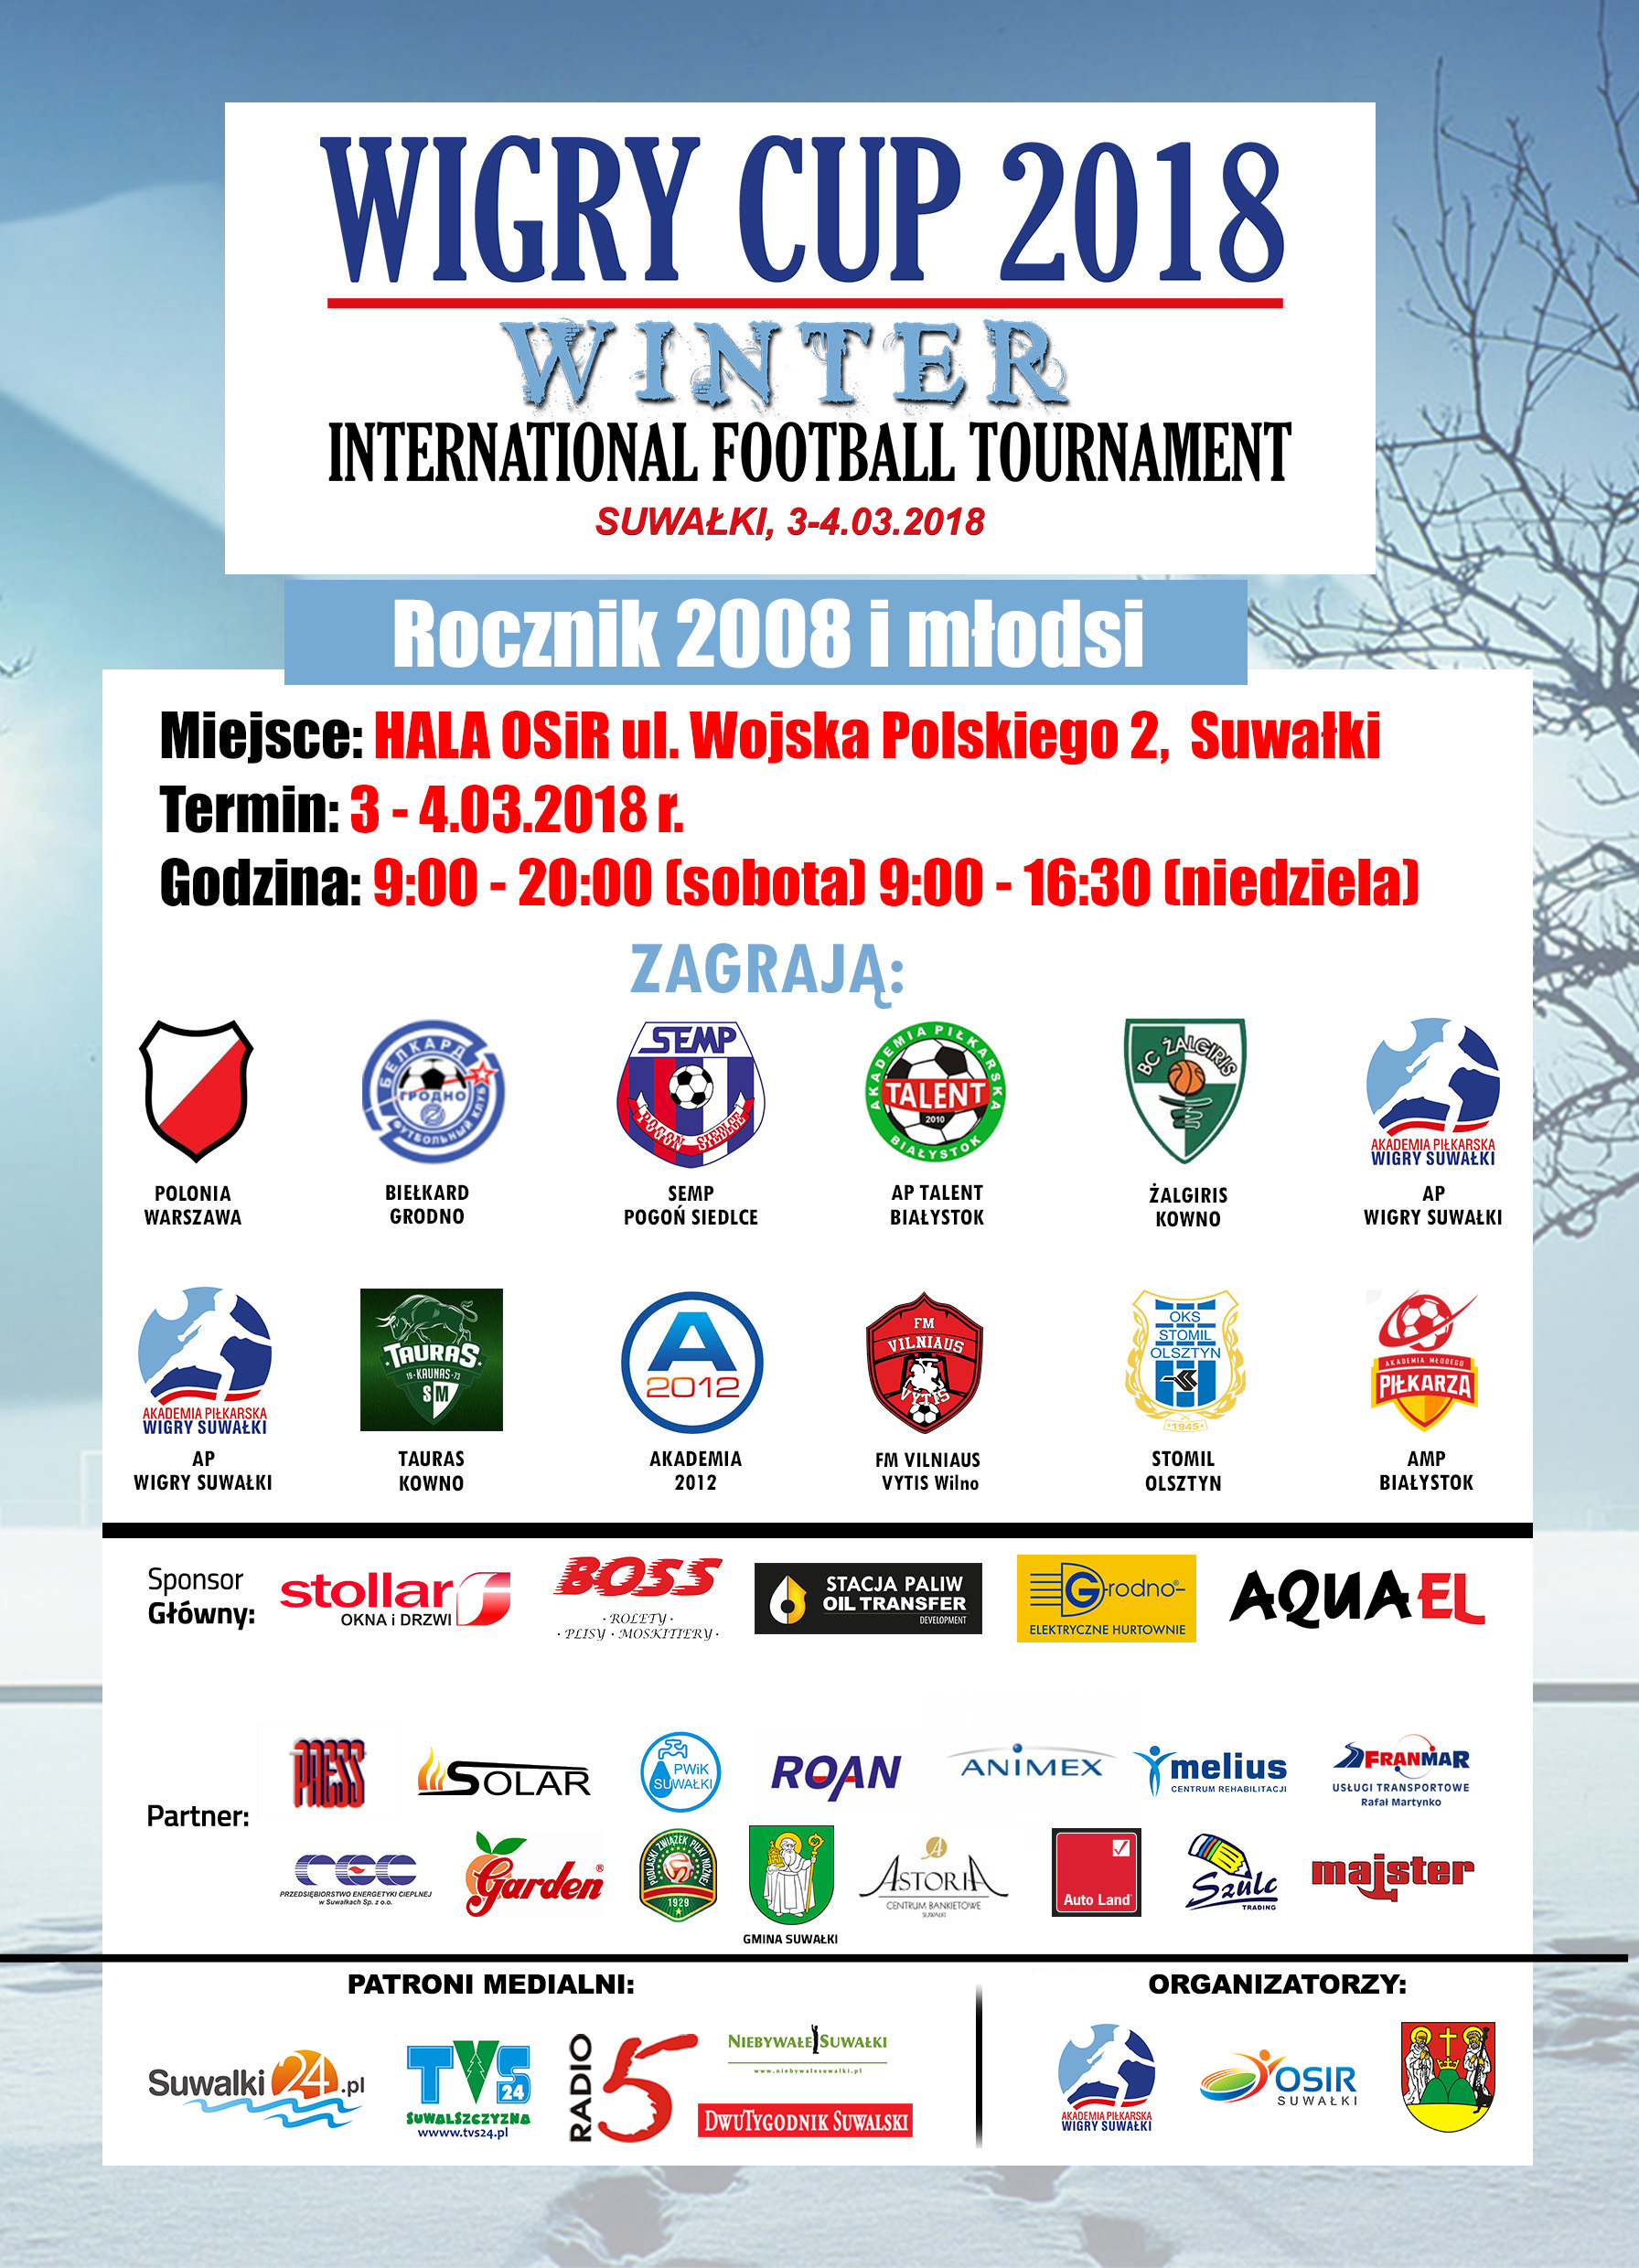 WIGRY CUP 2018 – INTERNATIONAL FOOTBALL TOURNAMENT